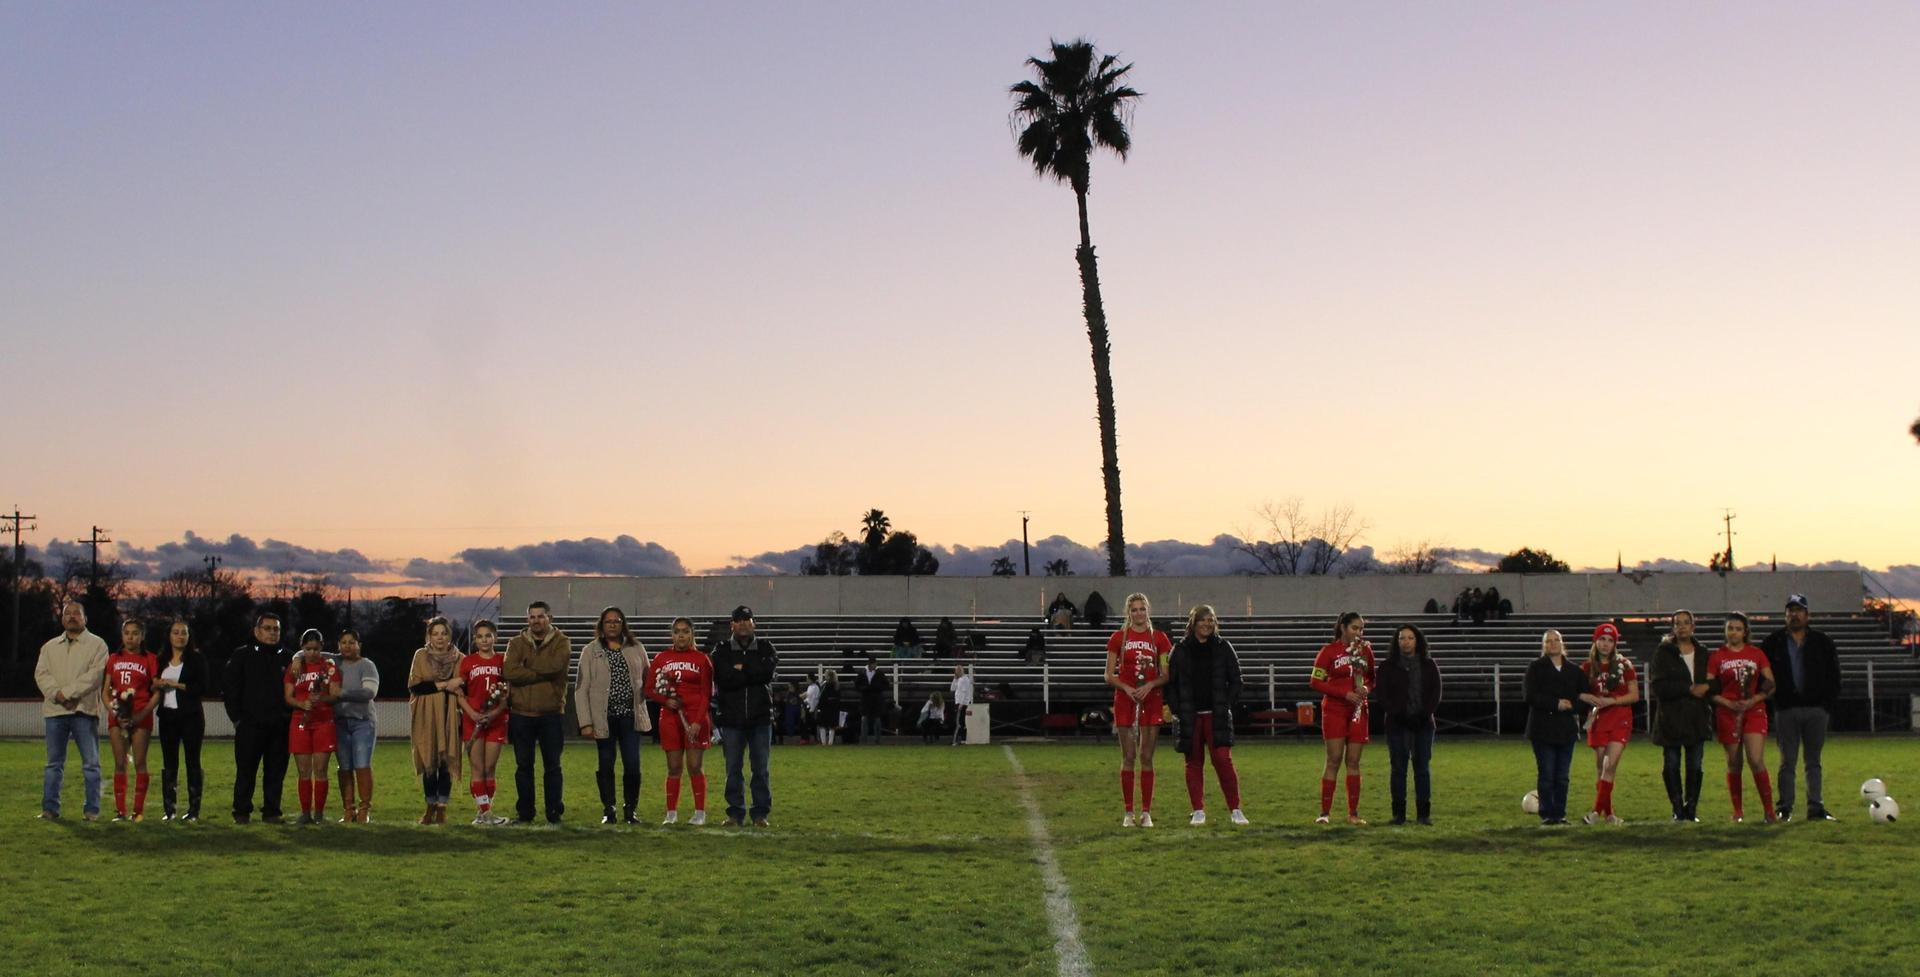 All the girls and their parents at soccer senior night